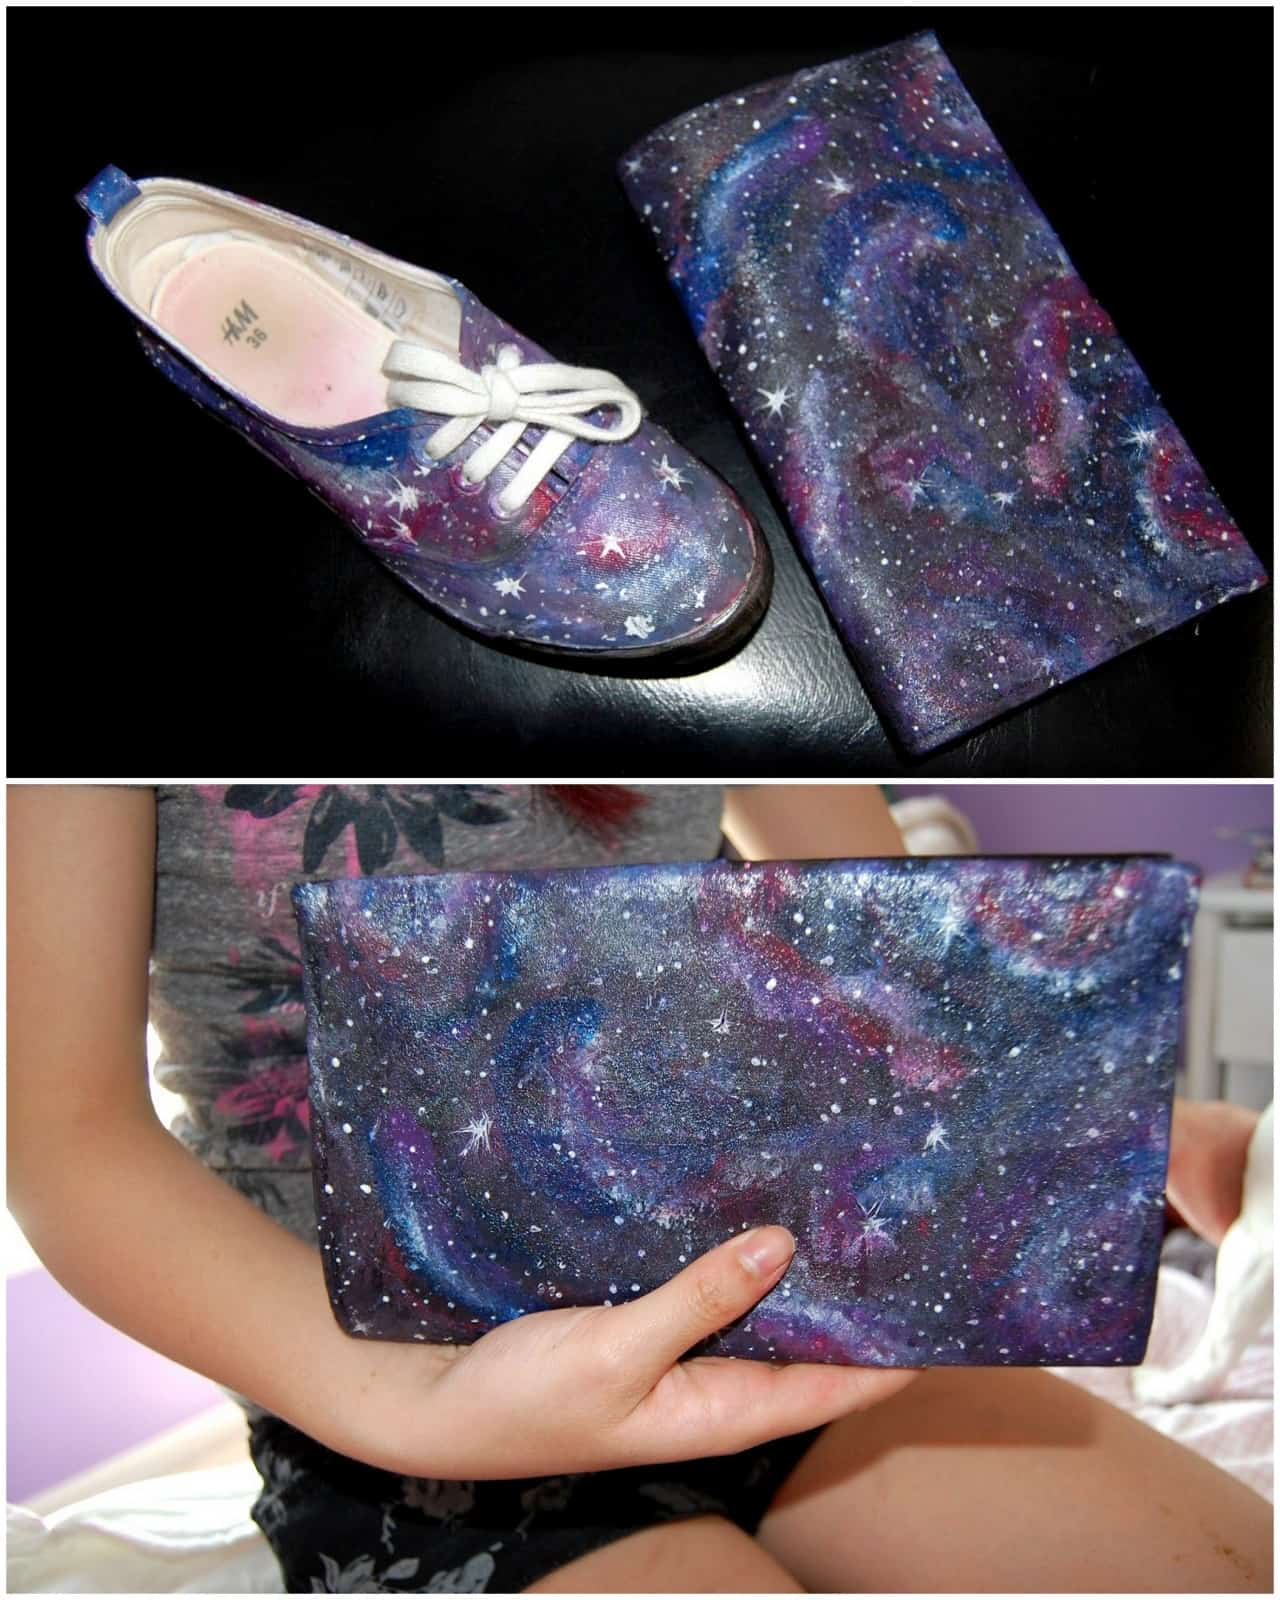 Painted galaxy clutch purse